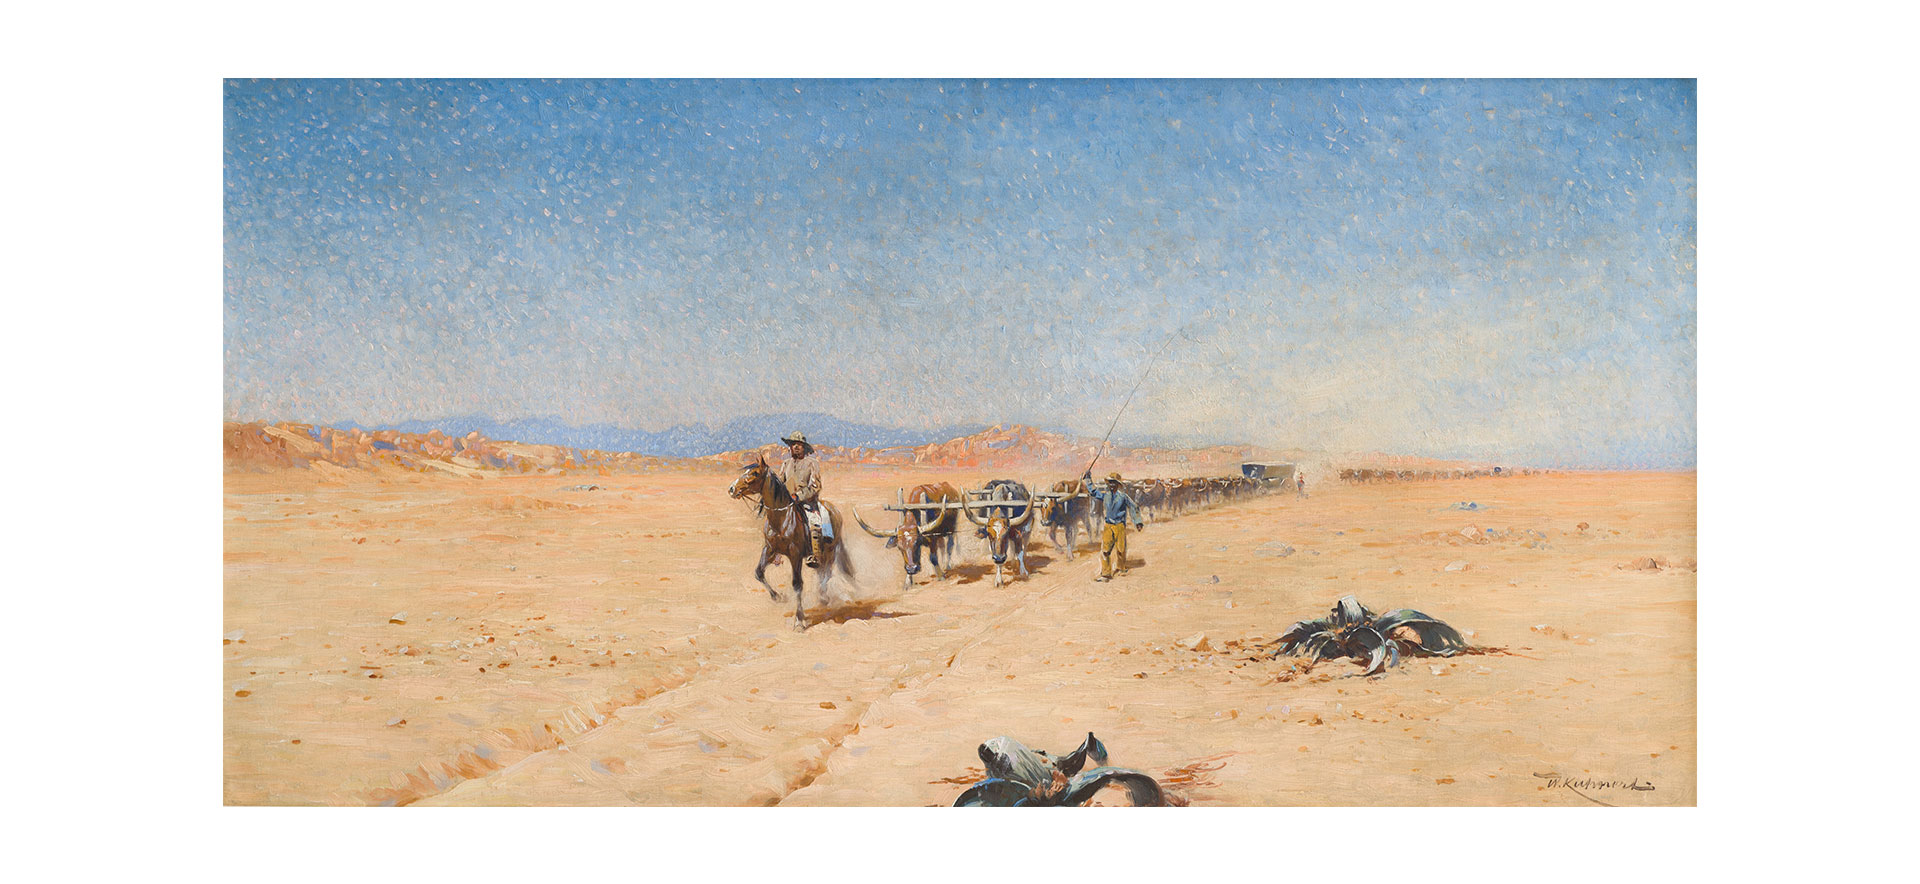 Wilhelm-Kuhnert-(Trek-through-the-Namib-Desert) sldier